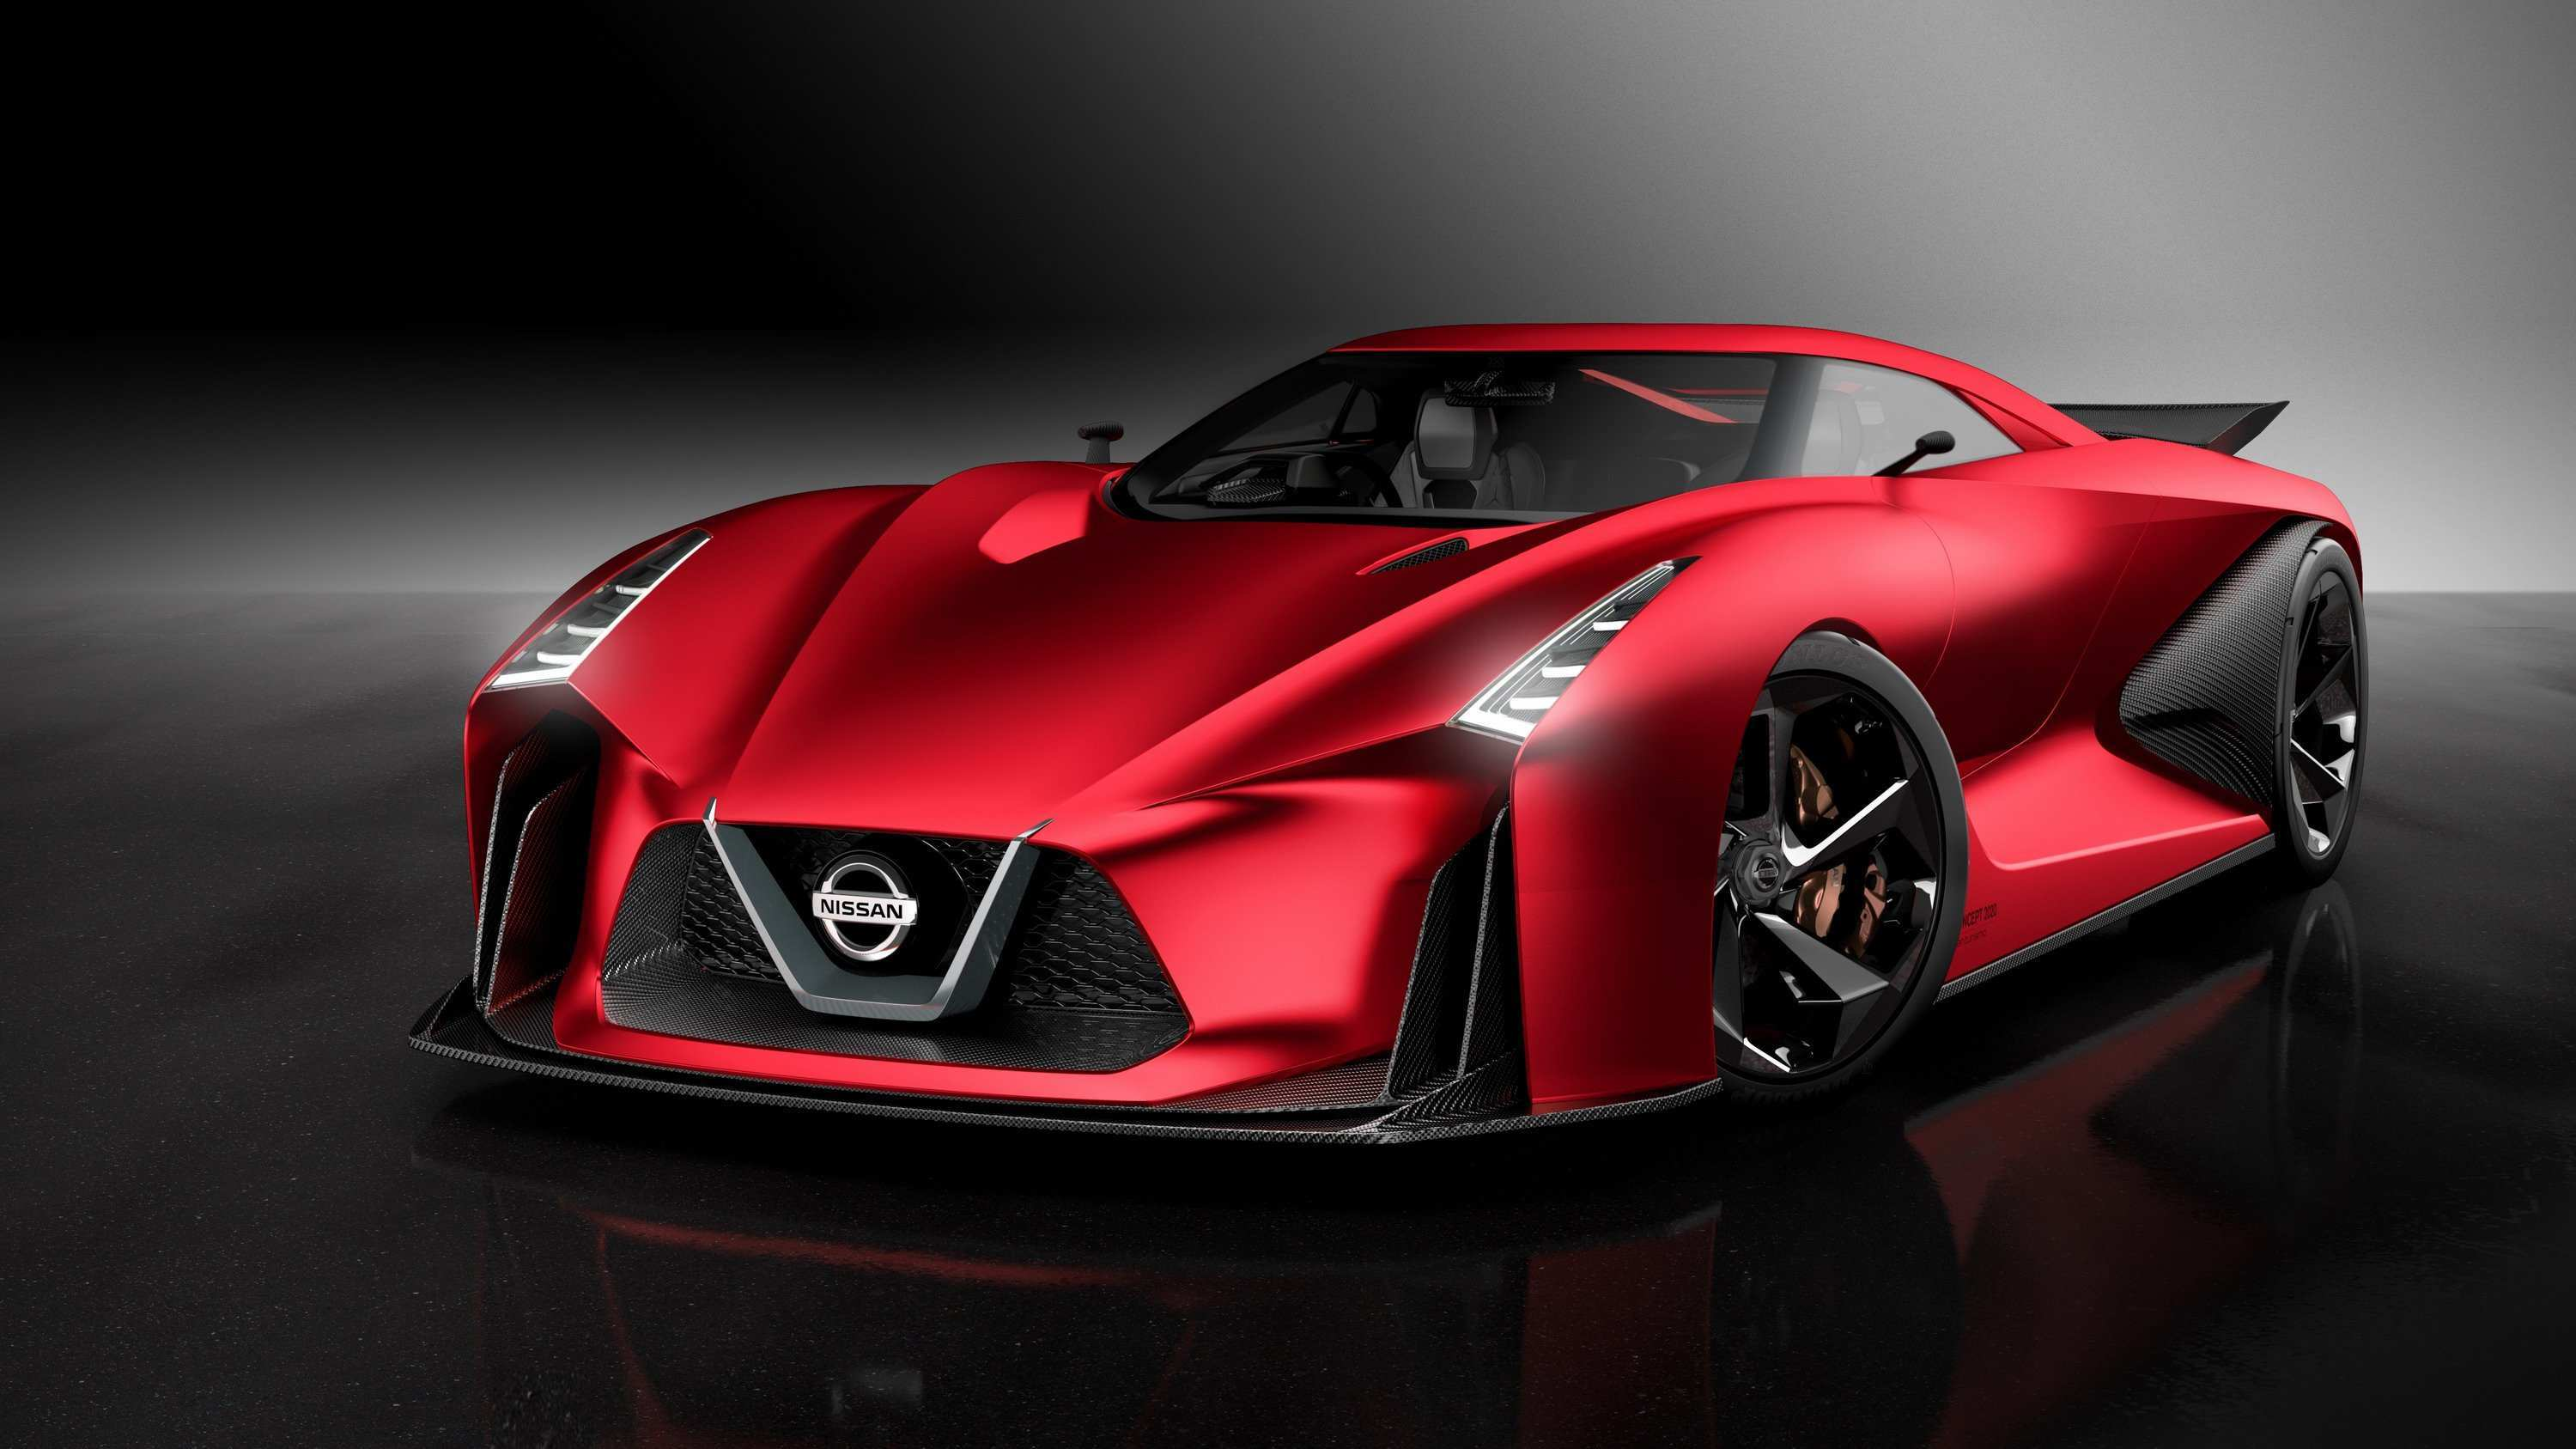 58 Best Review 2020 Nissan Gtr Exterior Price with 2020 Nissan Gtr Exterior